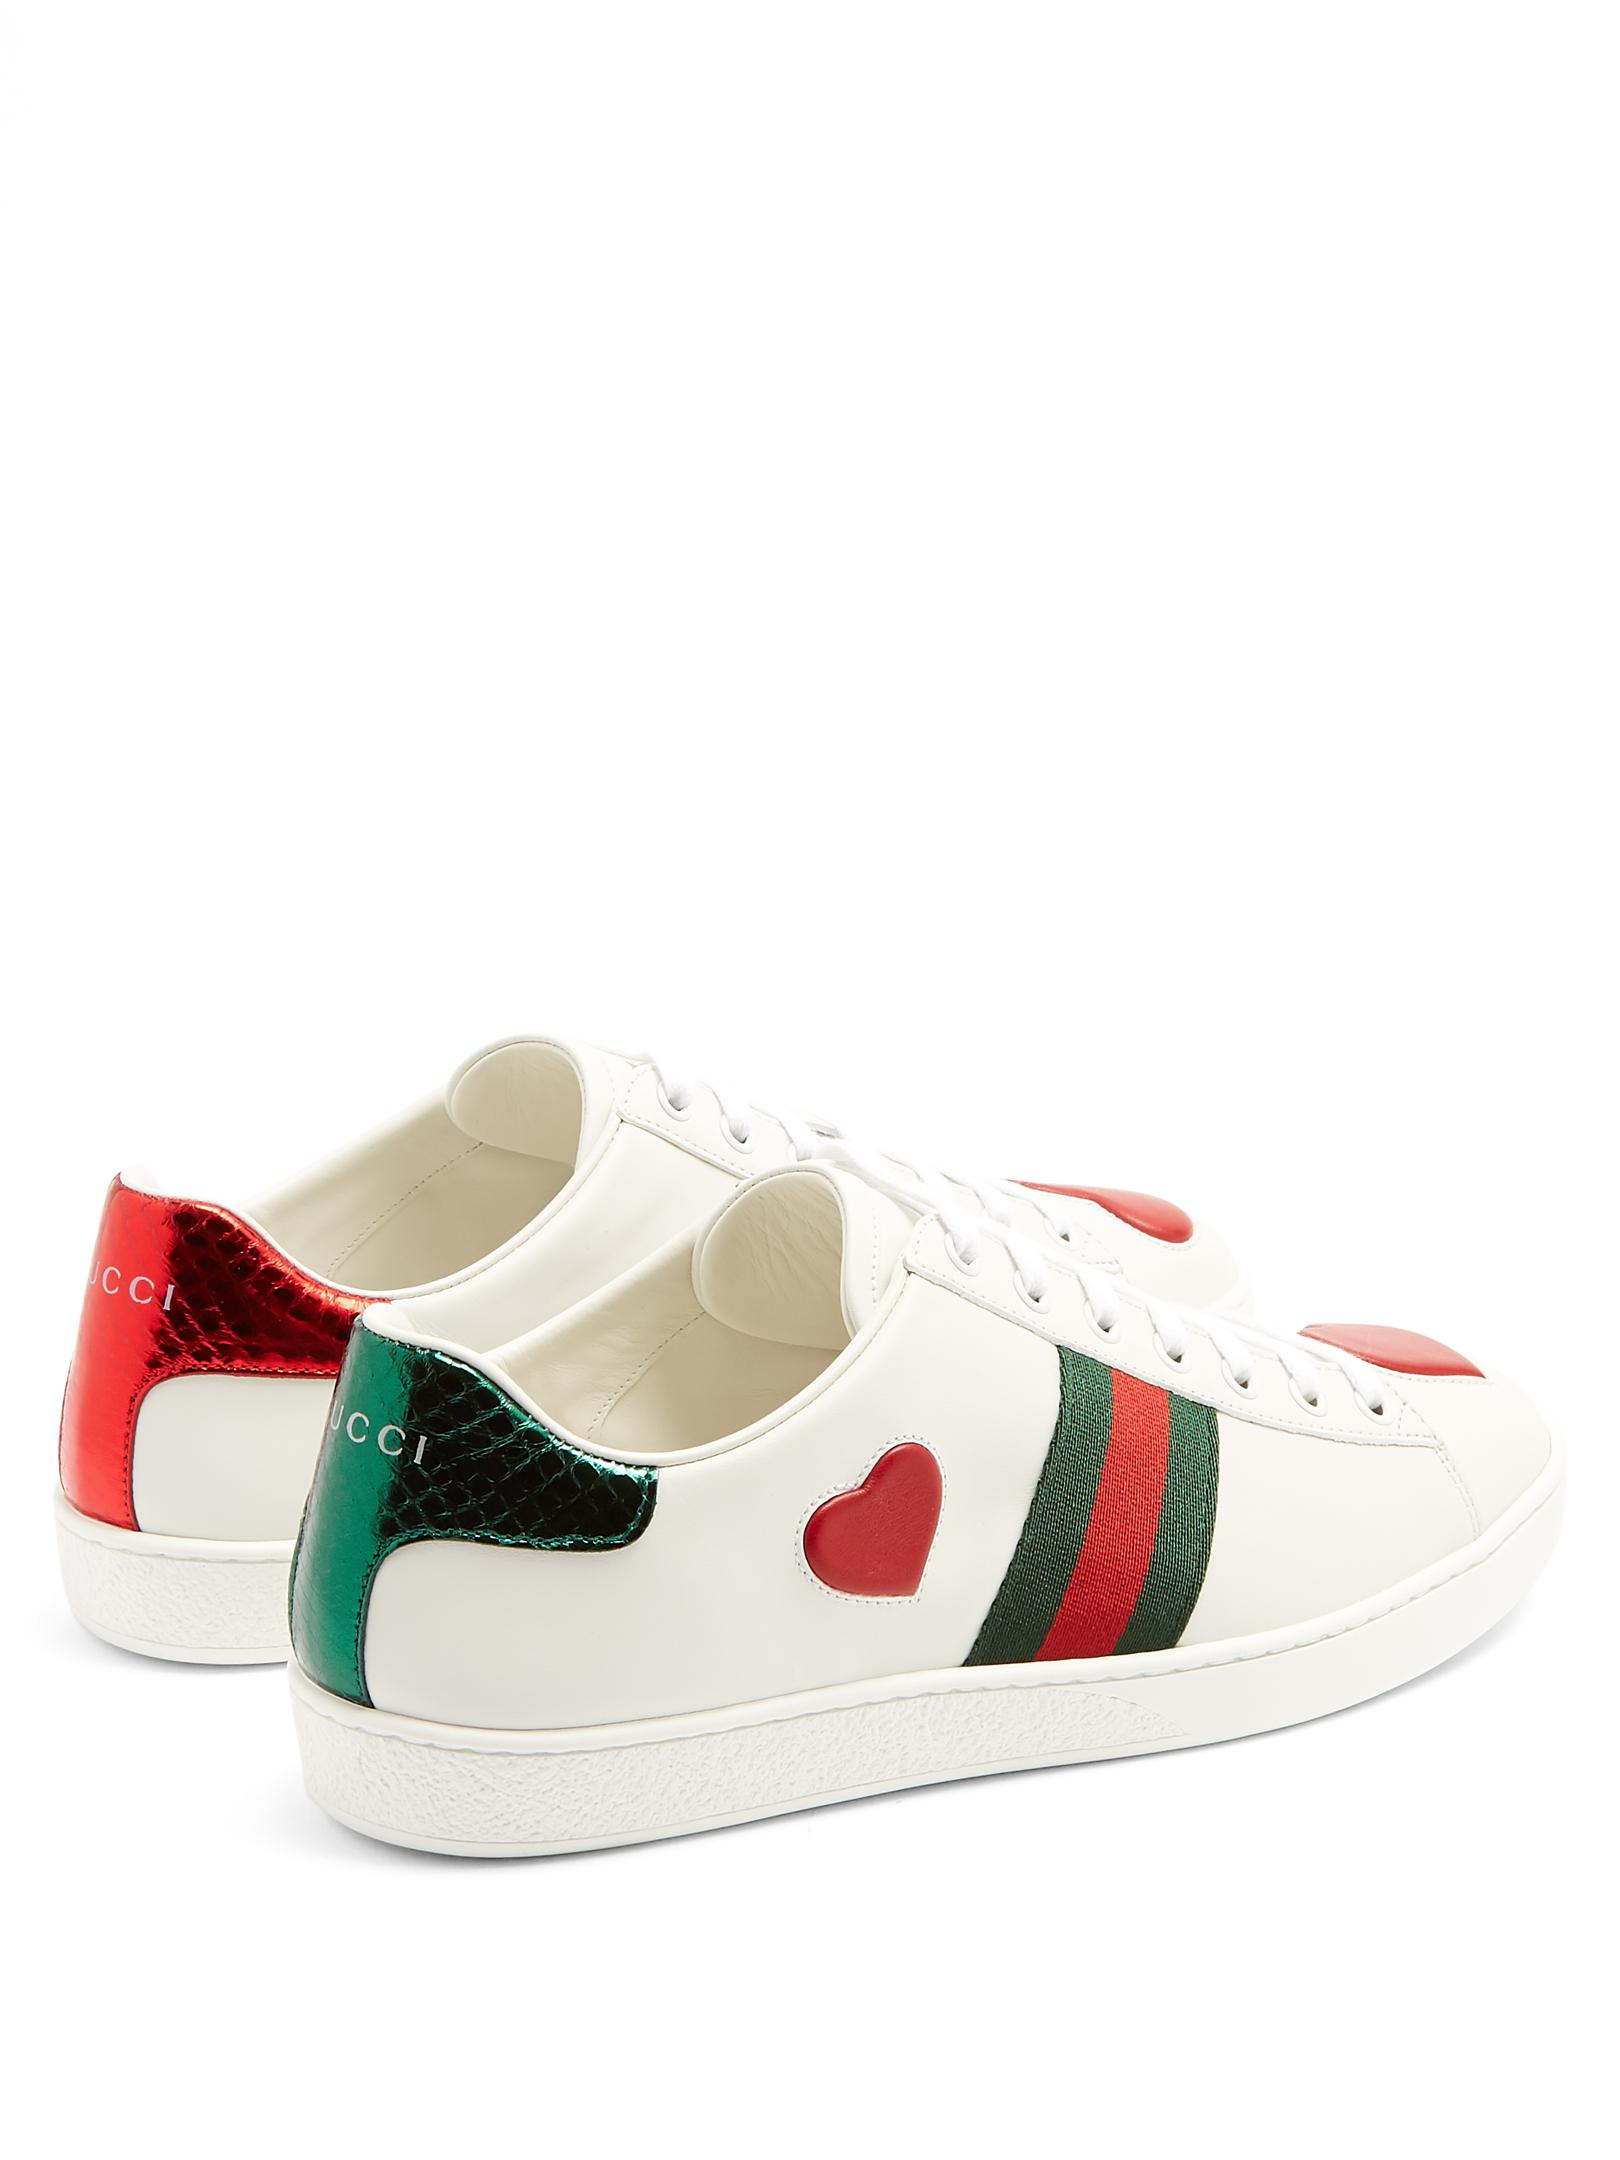 a5c8ed68fe3 Gucci New Ace Heart-appliqué Leather Trainers in White - Lyst